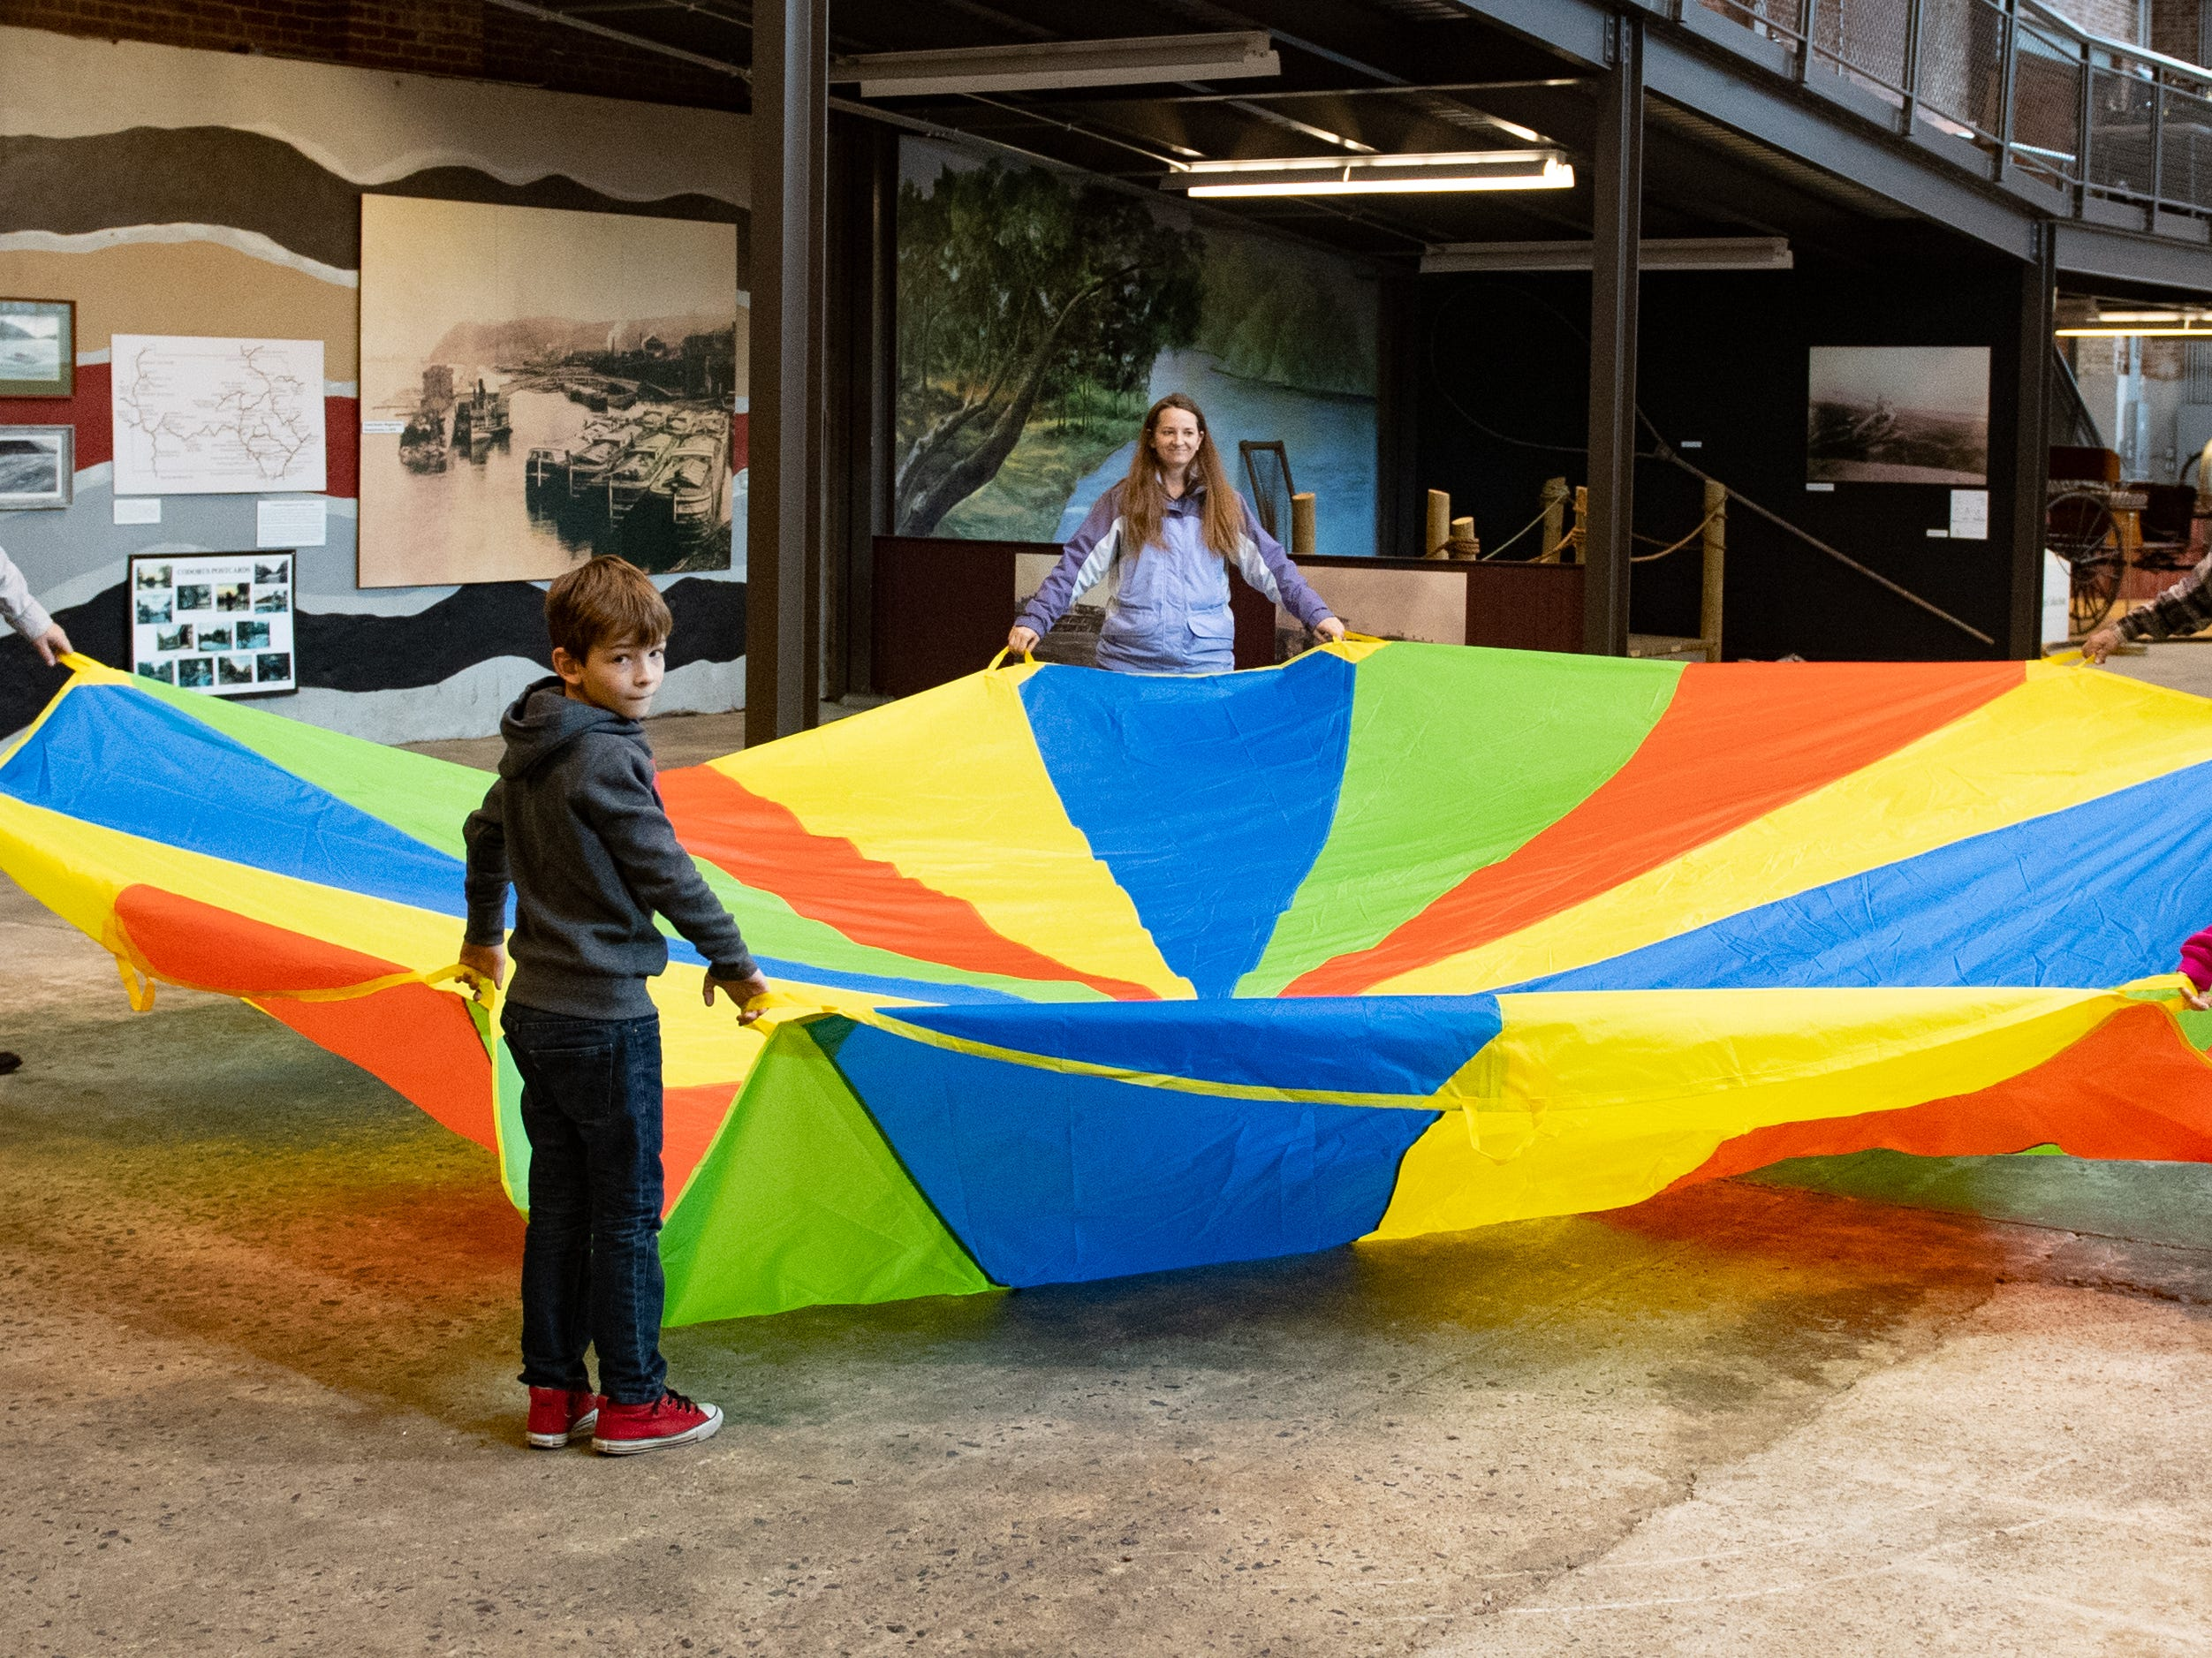 Family Activity Day featured two parachutes that allowed kids to bounce small balls high into the air among other things, December 28, 2018.